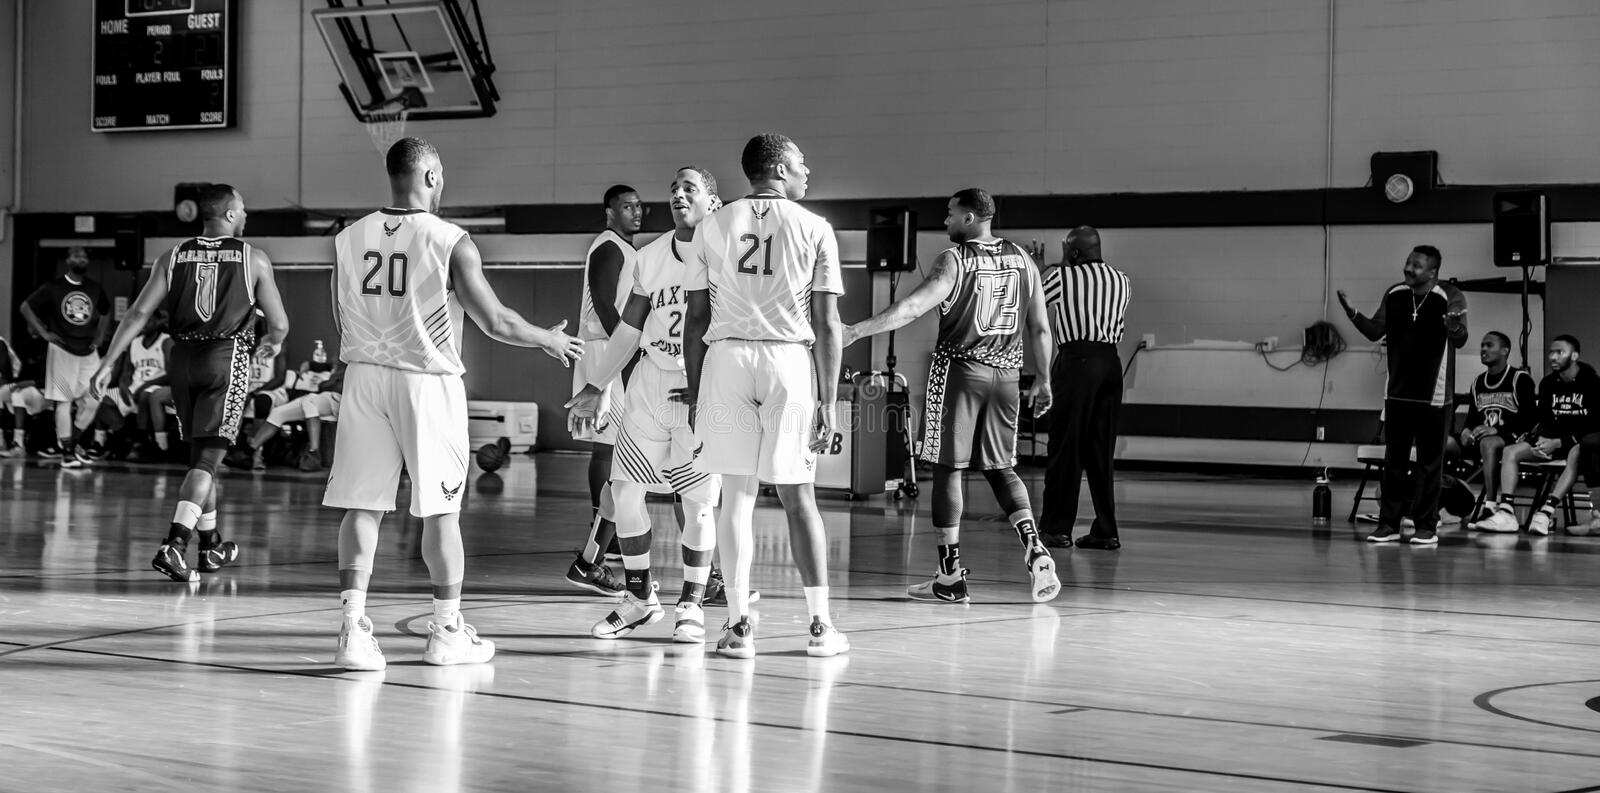 Maxwell Air Force Base Gunter Annex  Basketball Team Action Shots in Black and White. Montgomery, ALABAMA - JANUARY 26, 2019: Action shots of the Maxwell Air stock photography